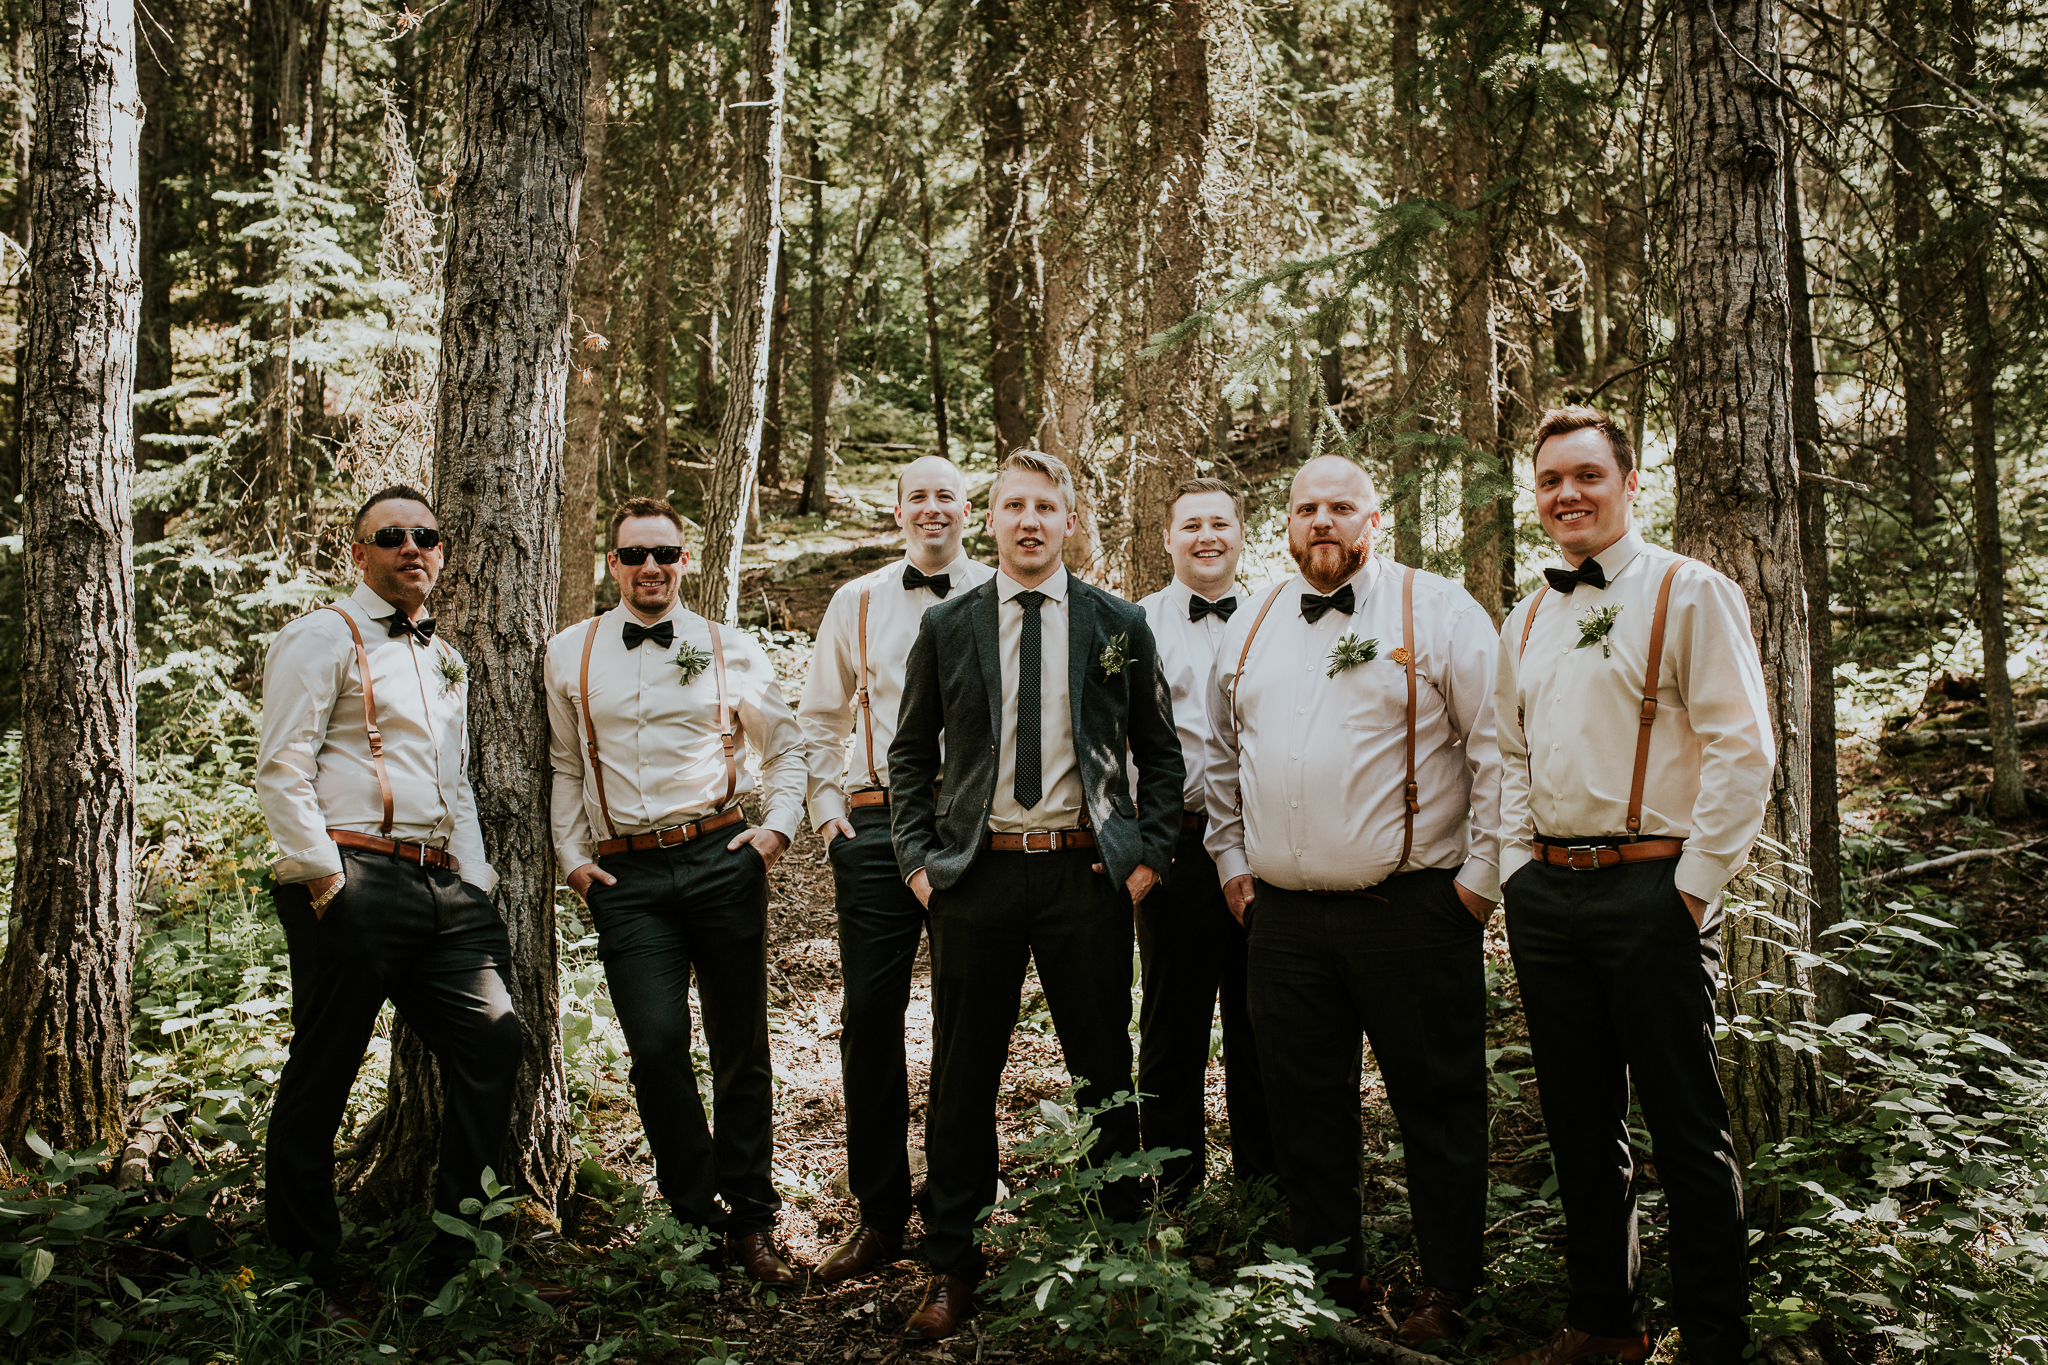 Groomsmen portraits in forest at Mount Lorette ponds Kananaskis